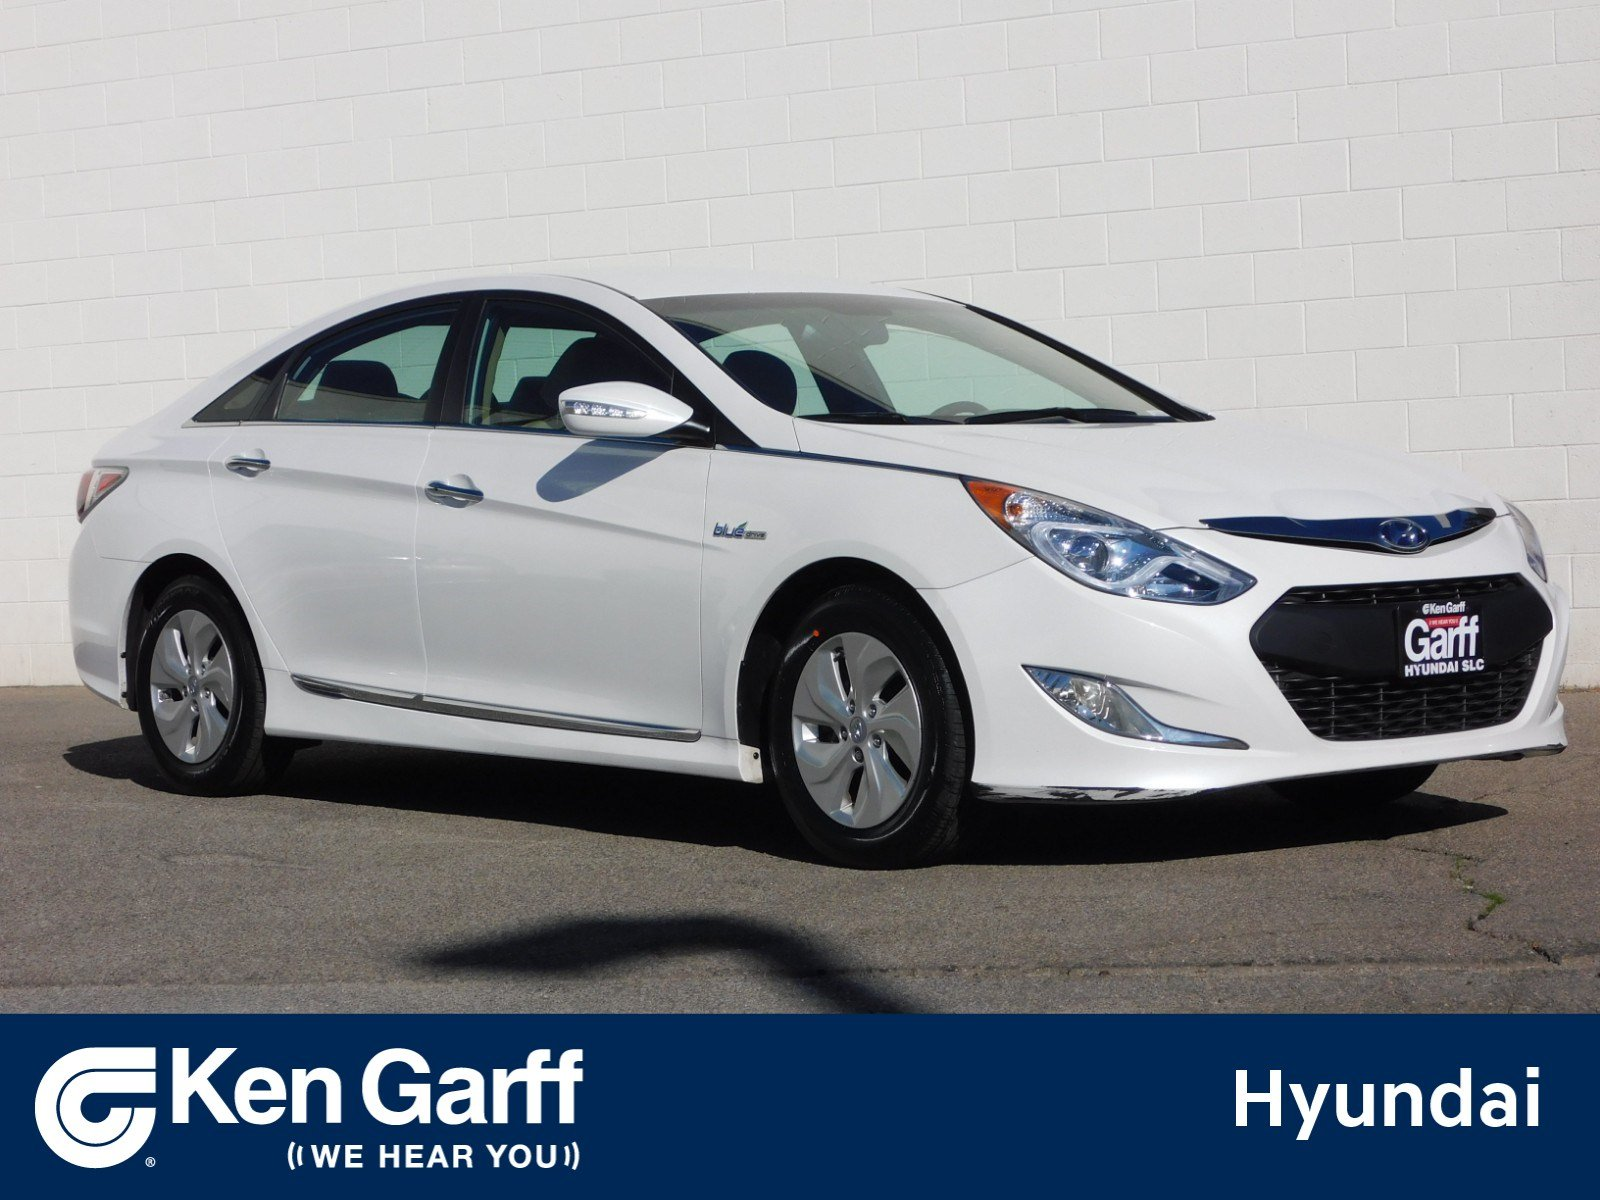 Certified Pre Owned 2015 Hyundai Sonata Hybrid 4DR SDN 4dr Car in